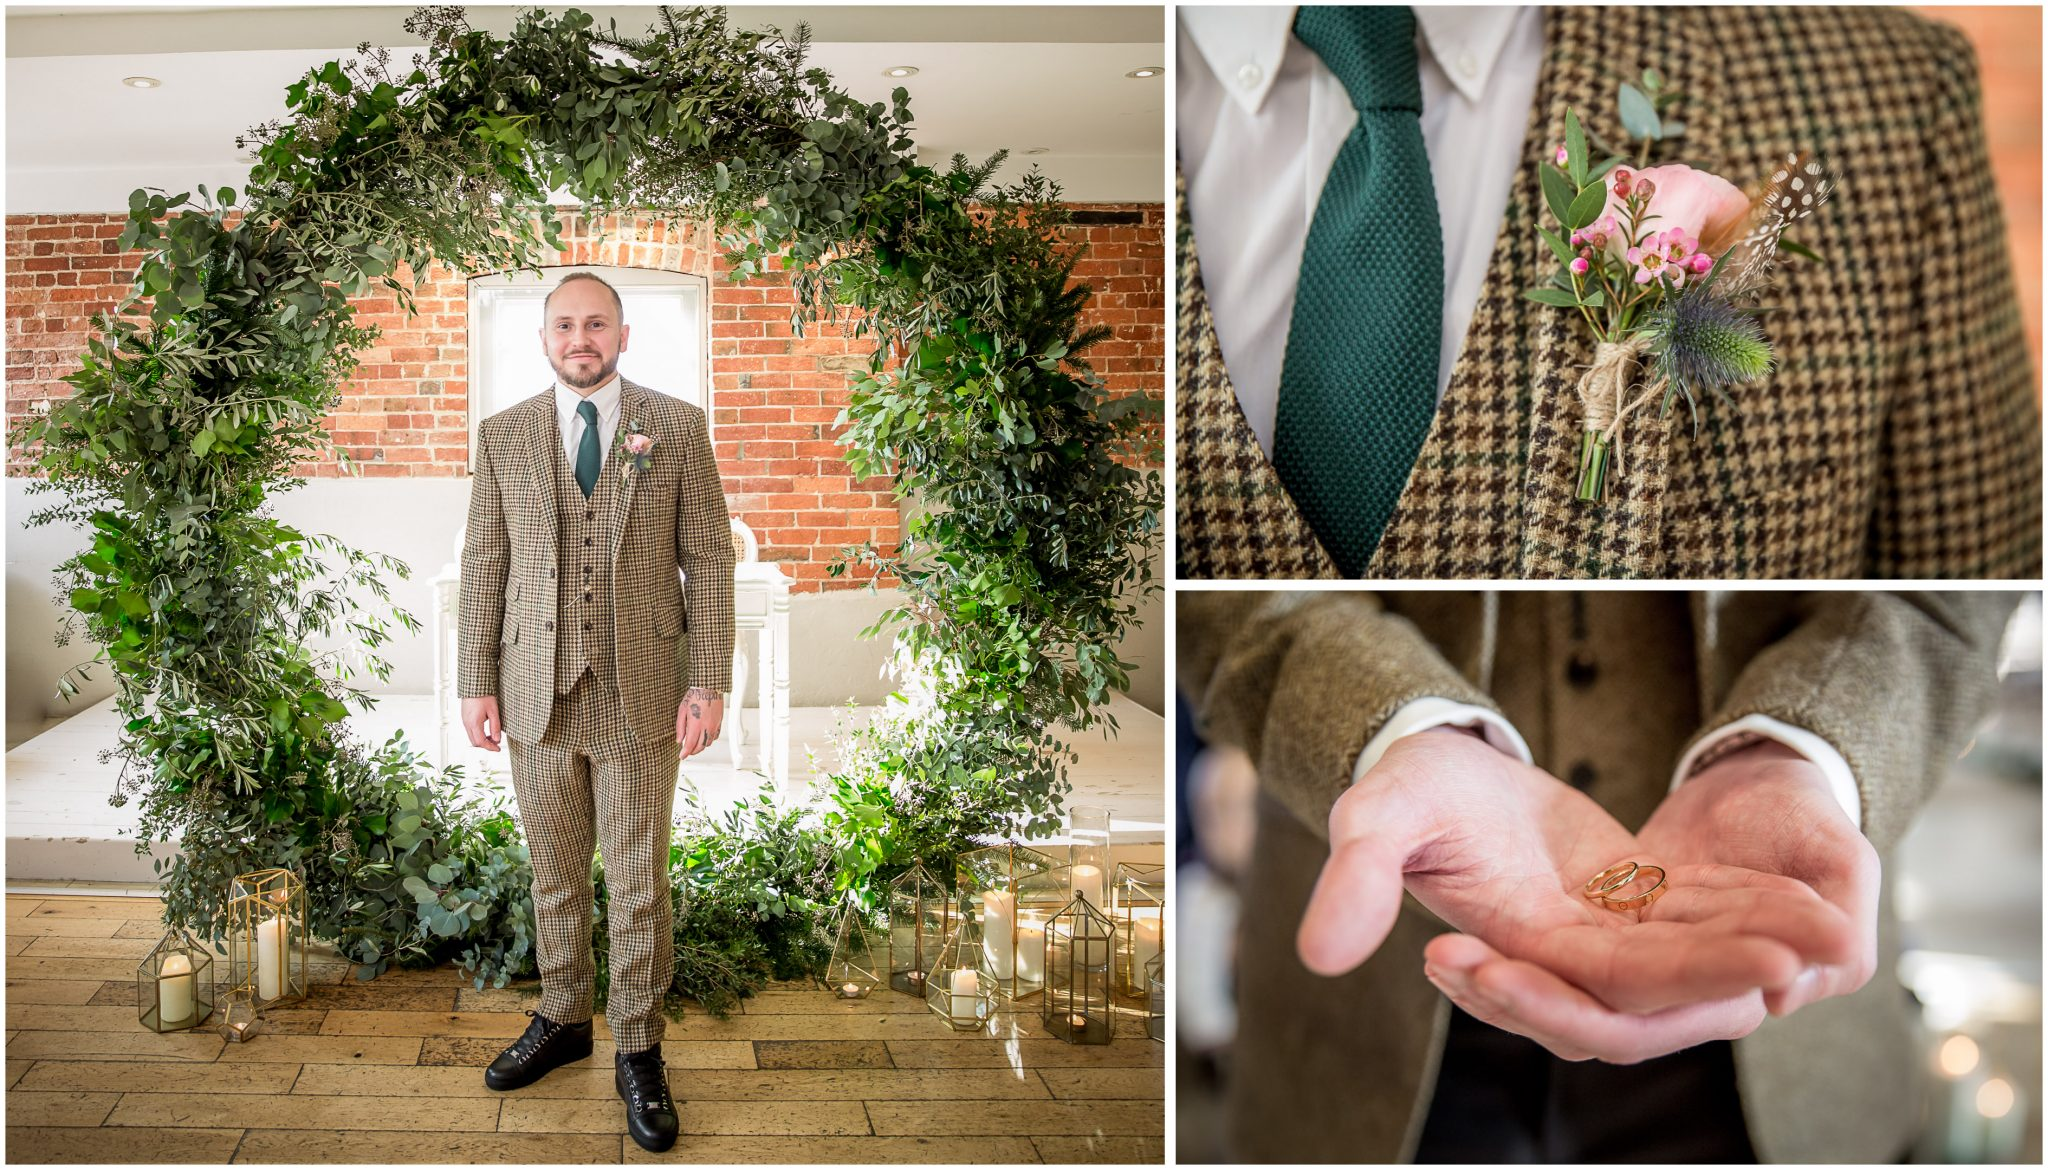 The groom stood at the front of the ceremony room in his self-tailored suit